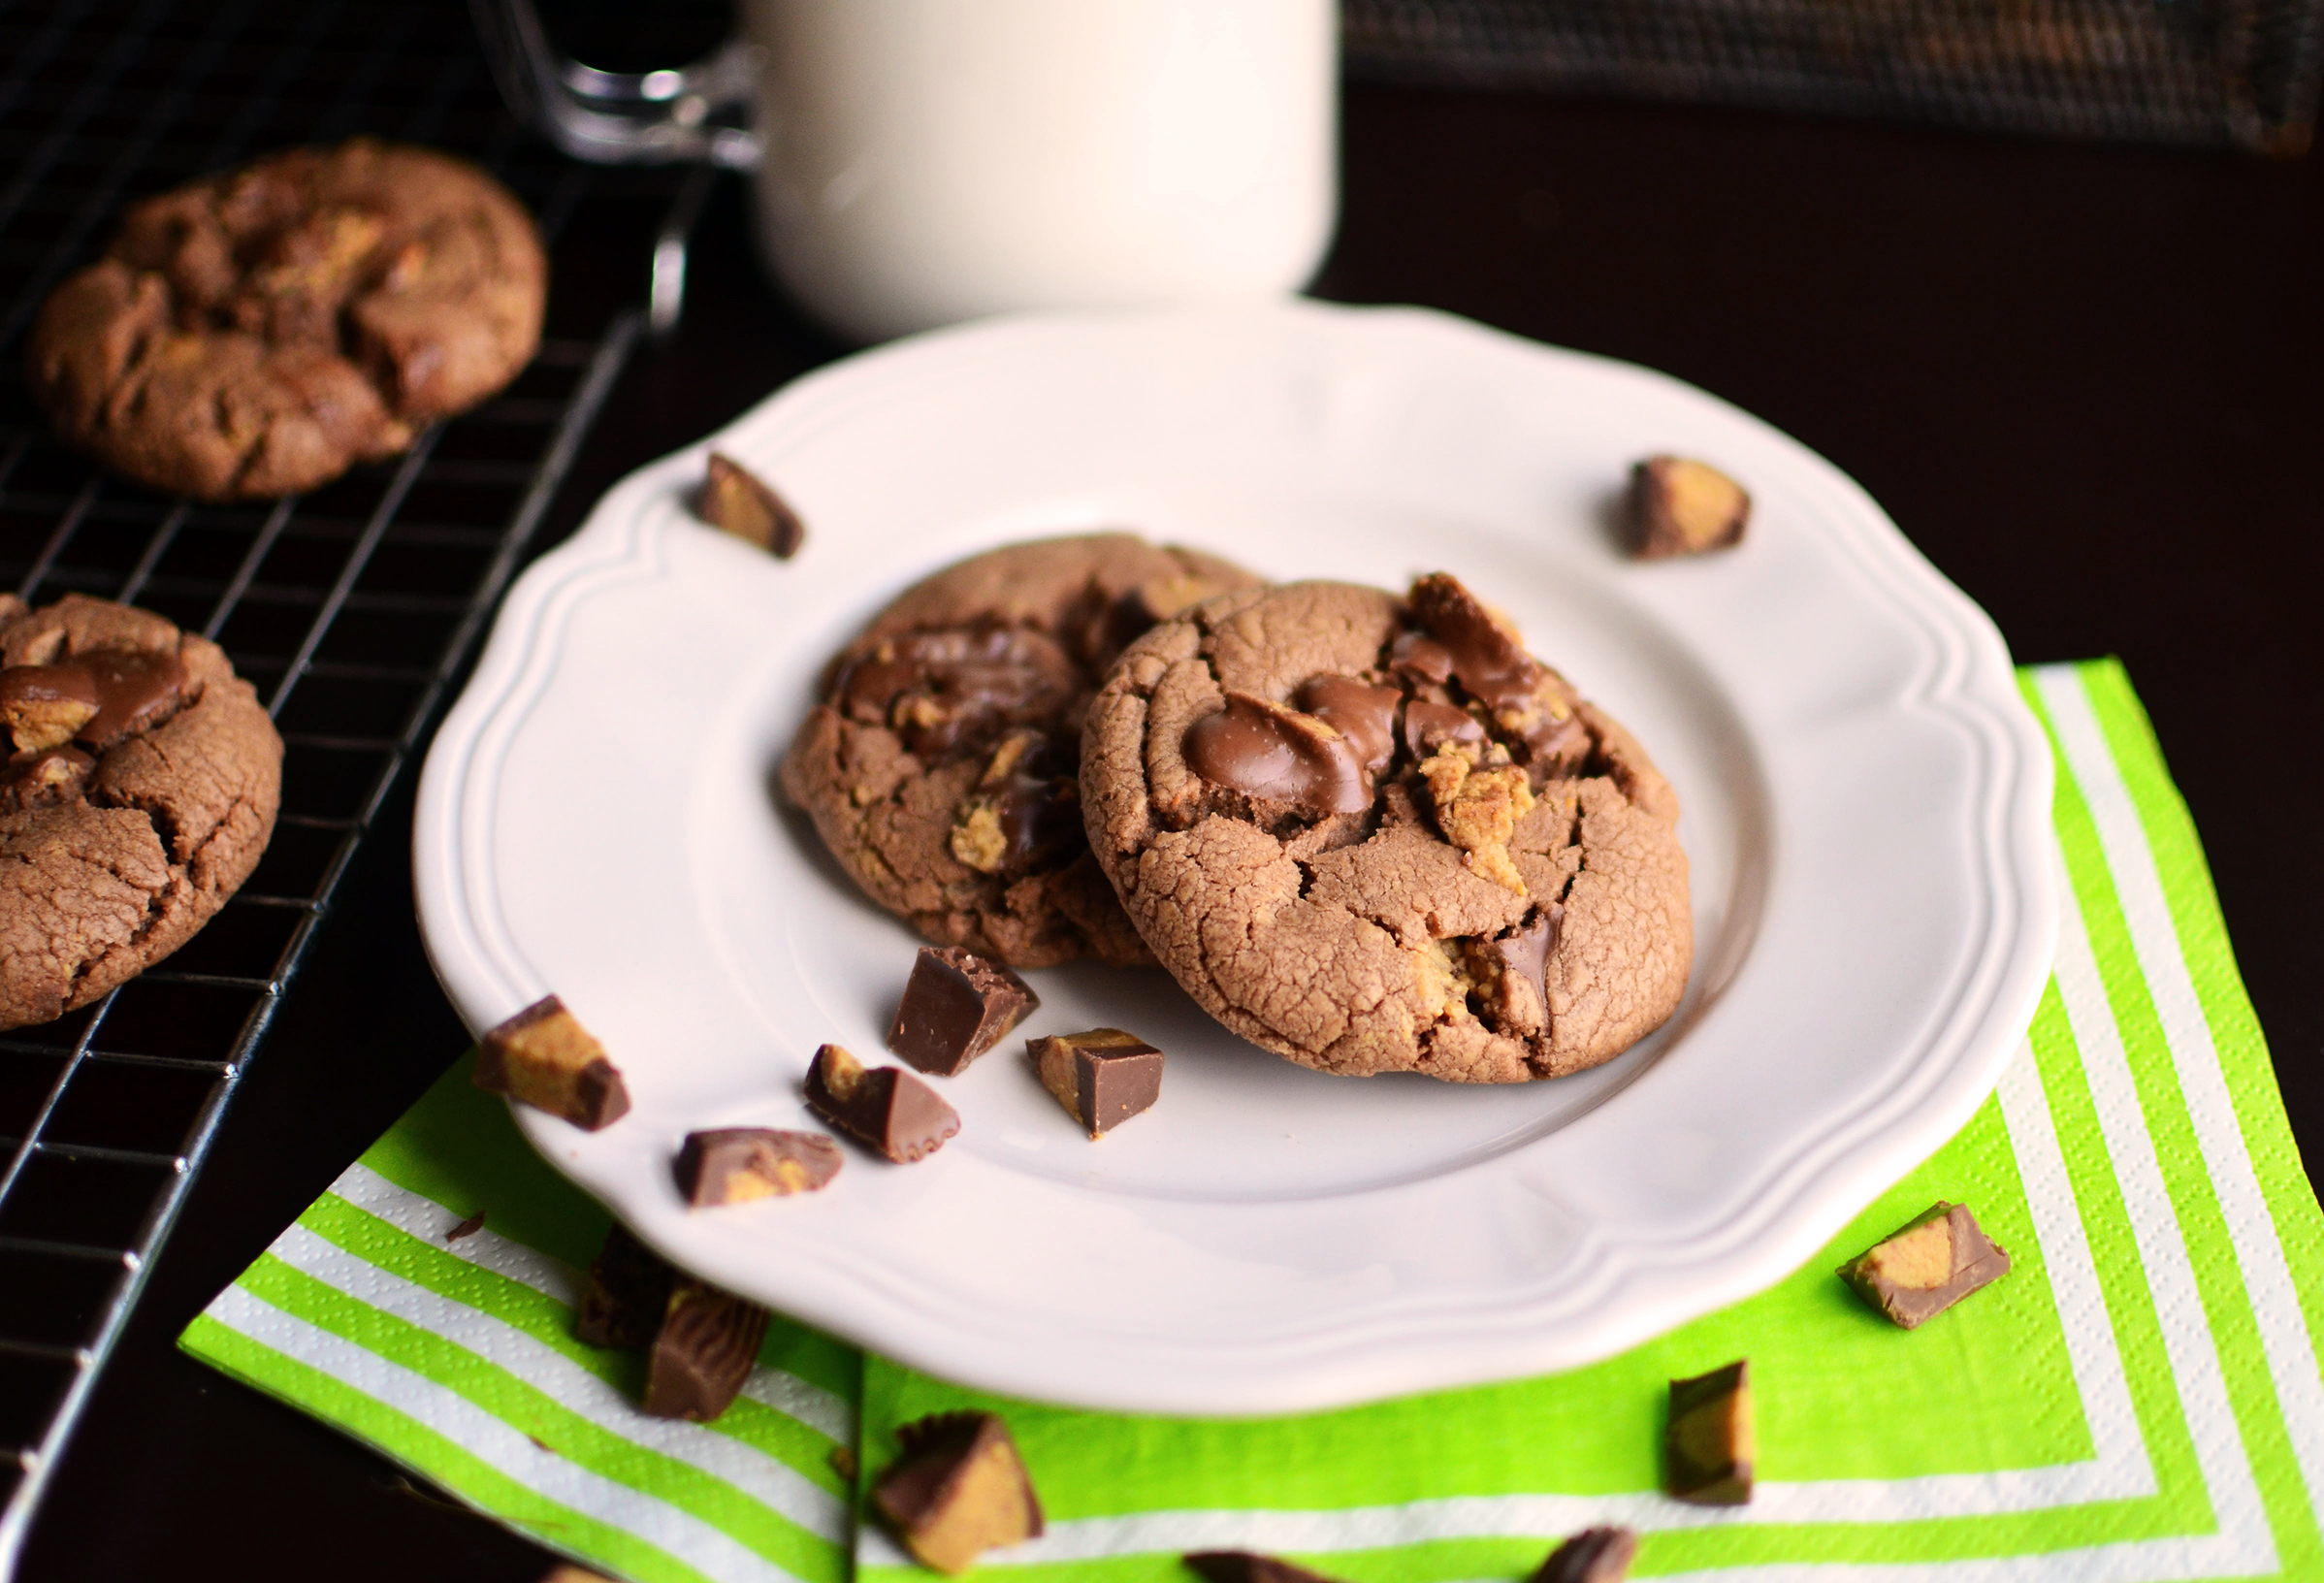 Chocolate Peanut Butter Cup Cookies - Simple, Sweet & Savory